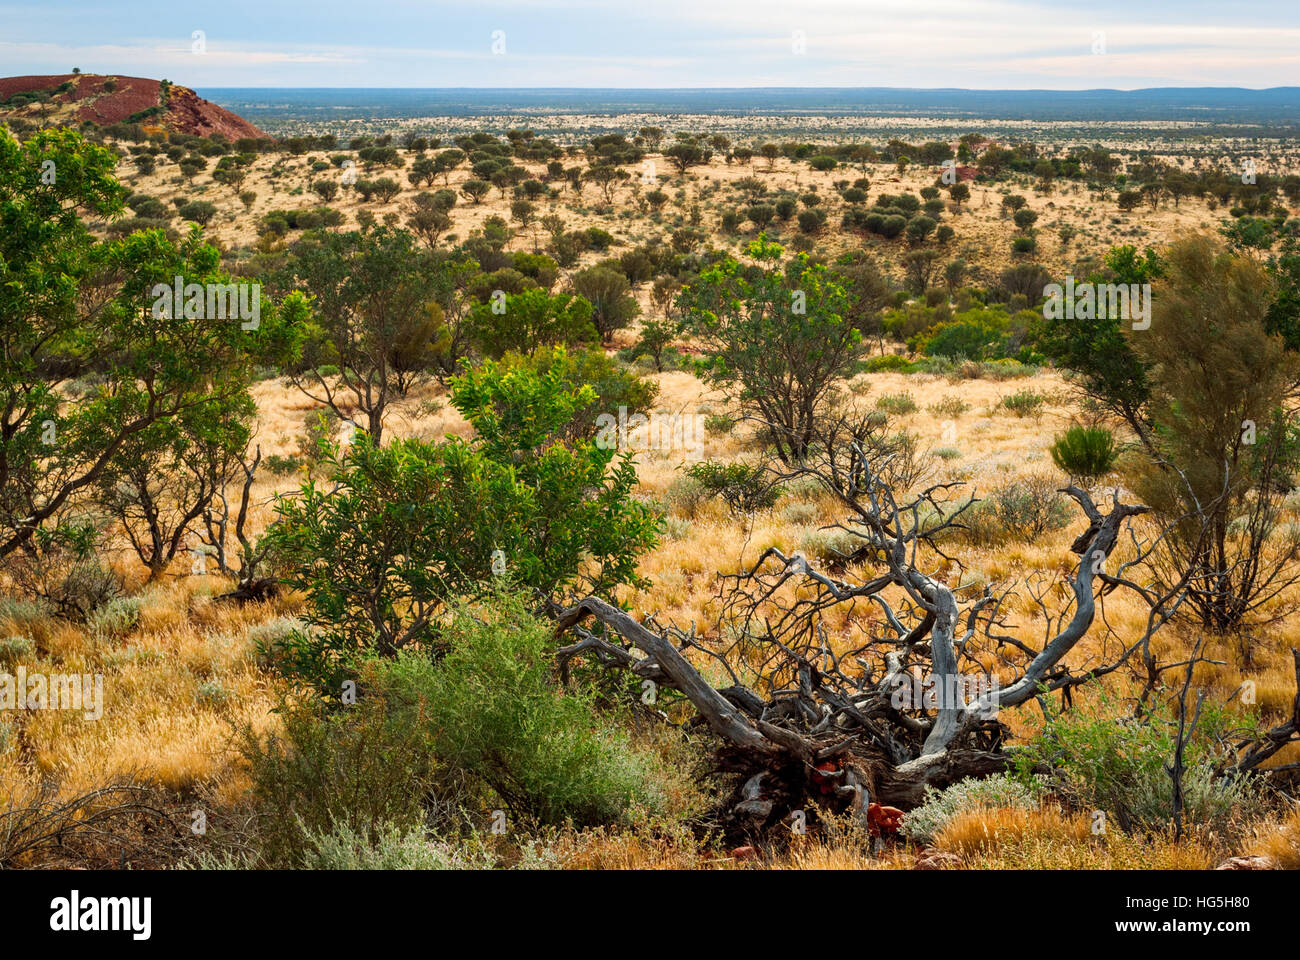 Australian desert (outback) in Northern Territory - Stock Image